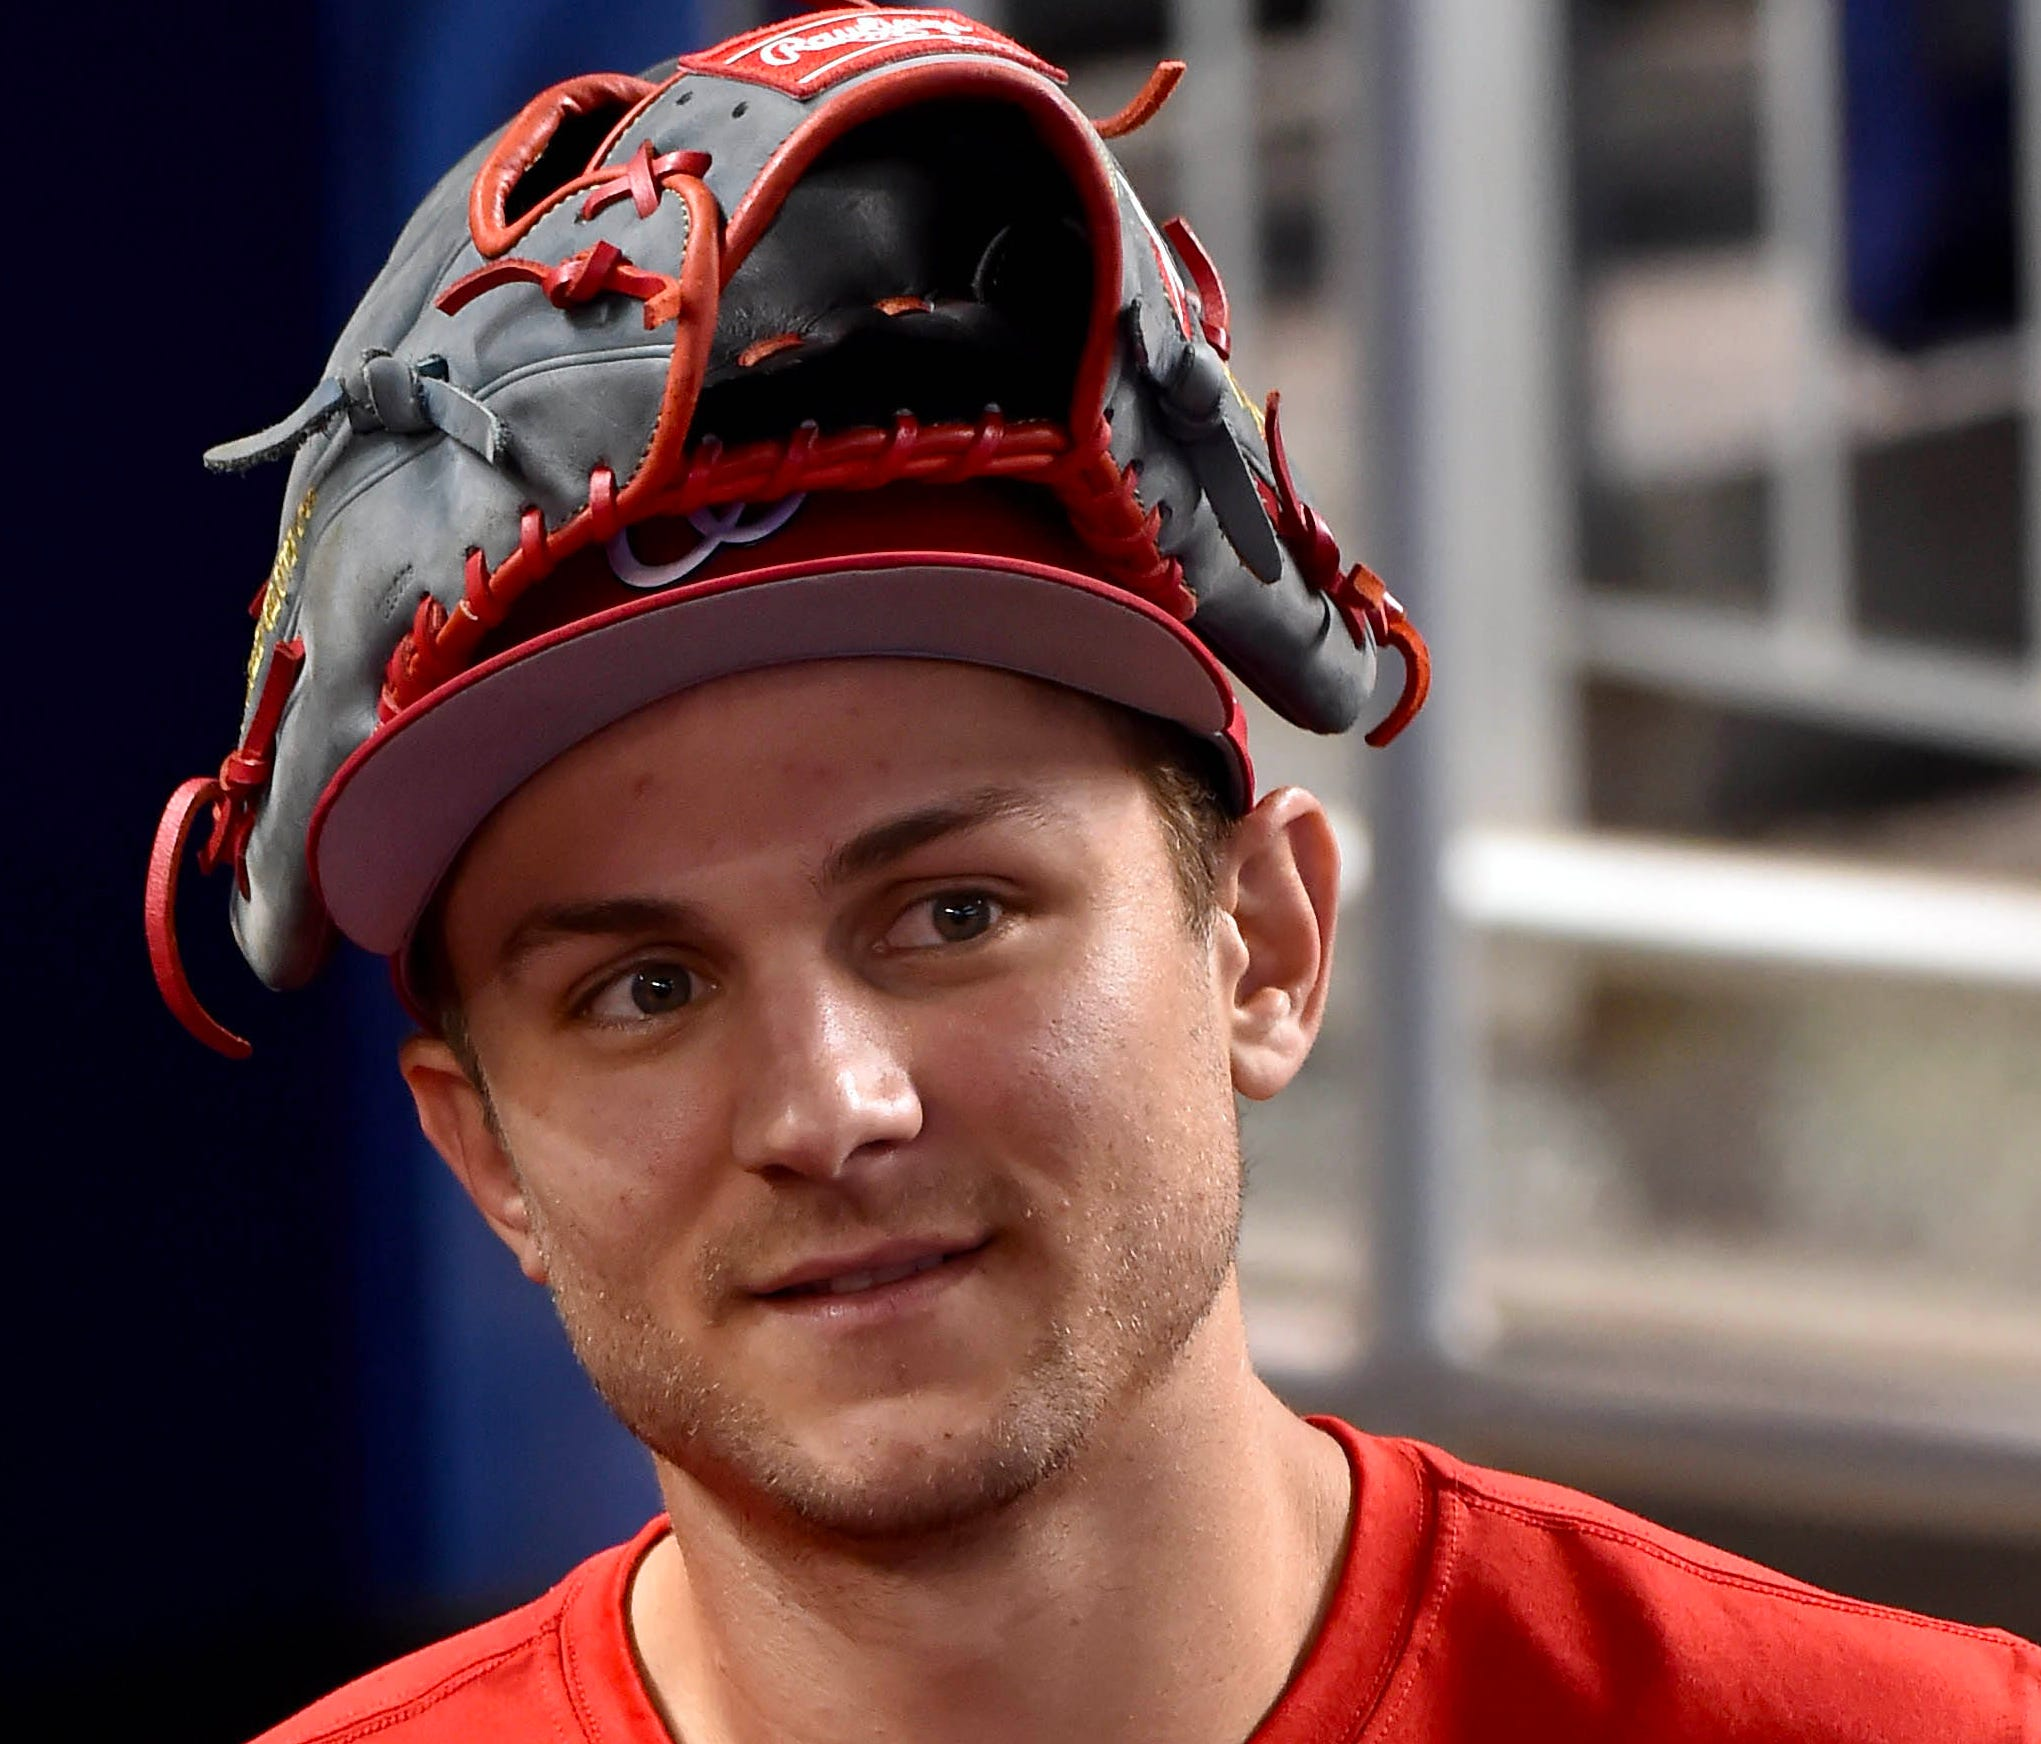 Nationals shortstop Trea Turner apologized Sunday night for offensive tweets he shared in 2011 and 2012.